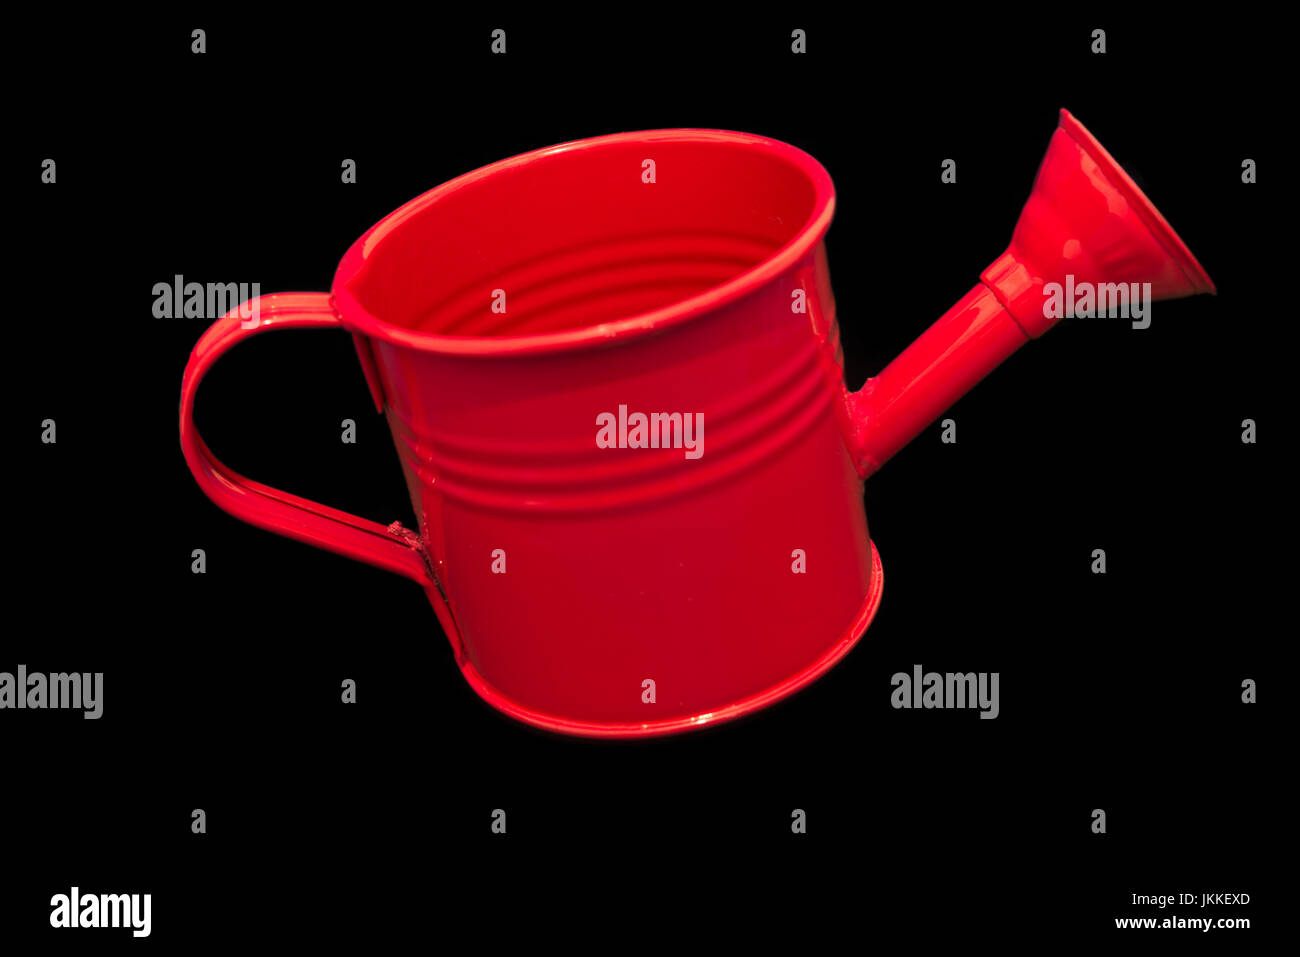 Single Red Watering can Isolated on Black Background. Image is clean and bright and centred in the image with room - Stock Image